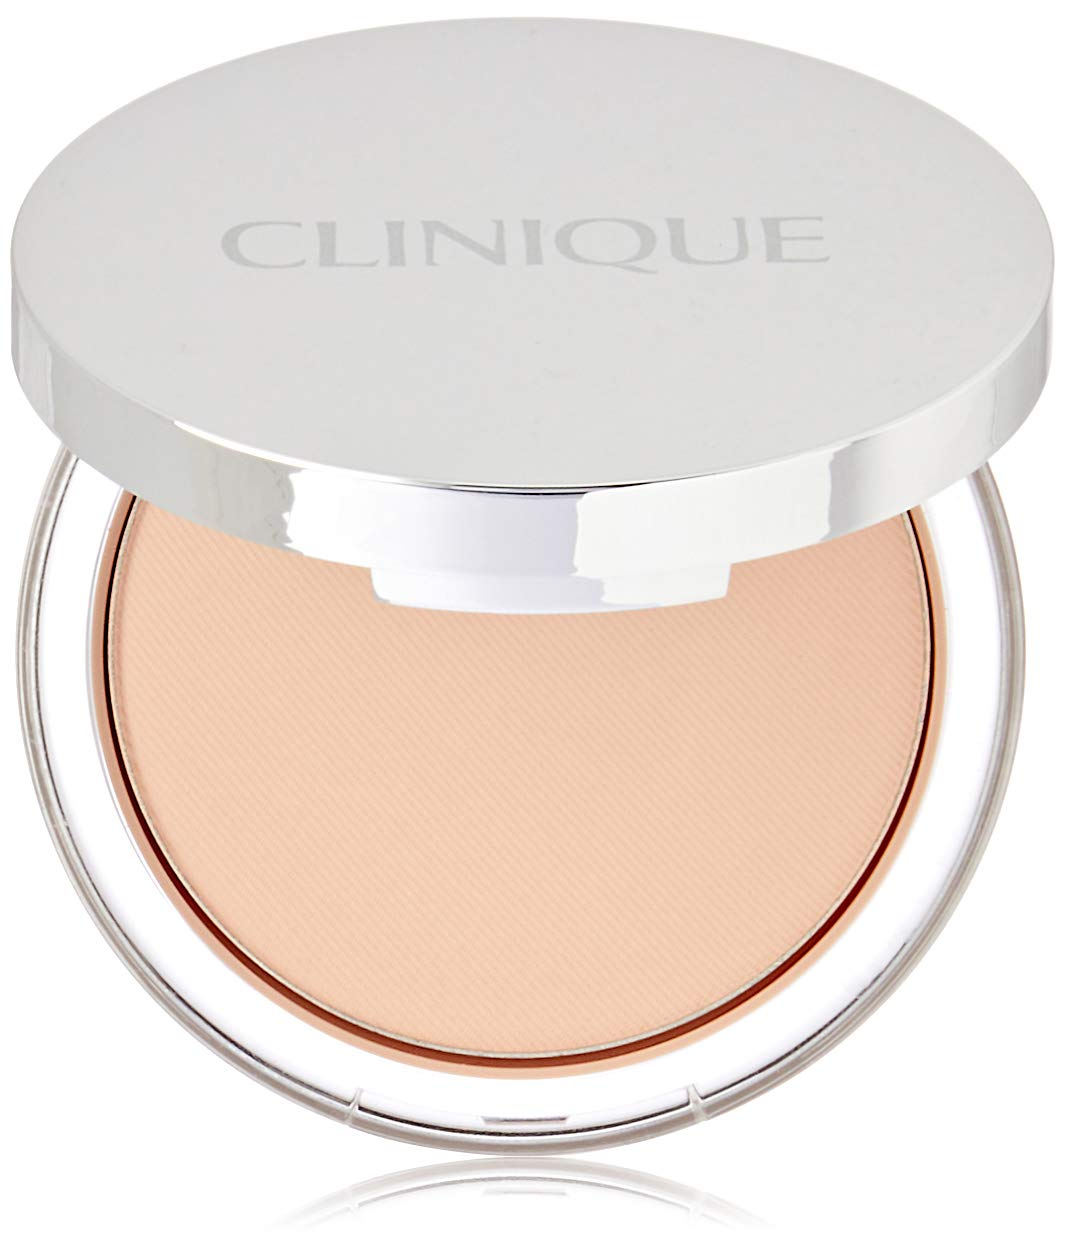 Clinique Super Powder Double Face Makeup for Dry Combination, No. 01 Matte Ivory (Vf-P), 0.35 Ounce